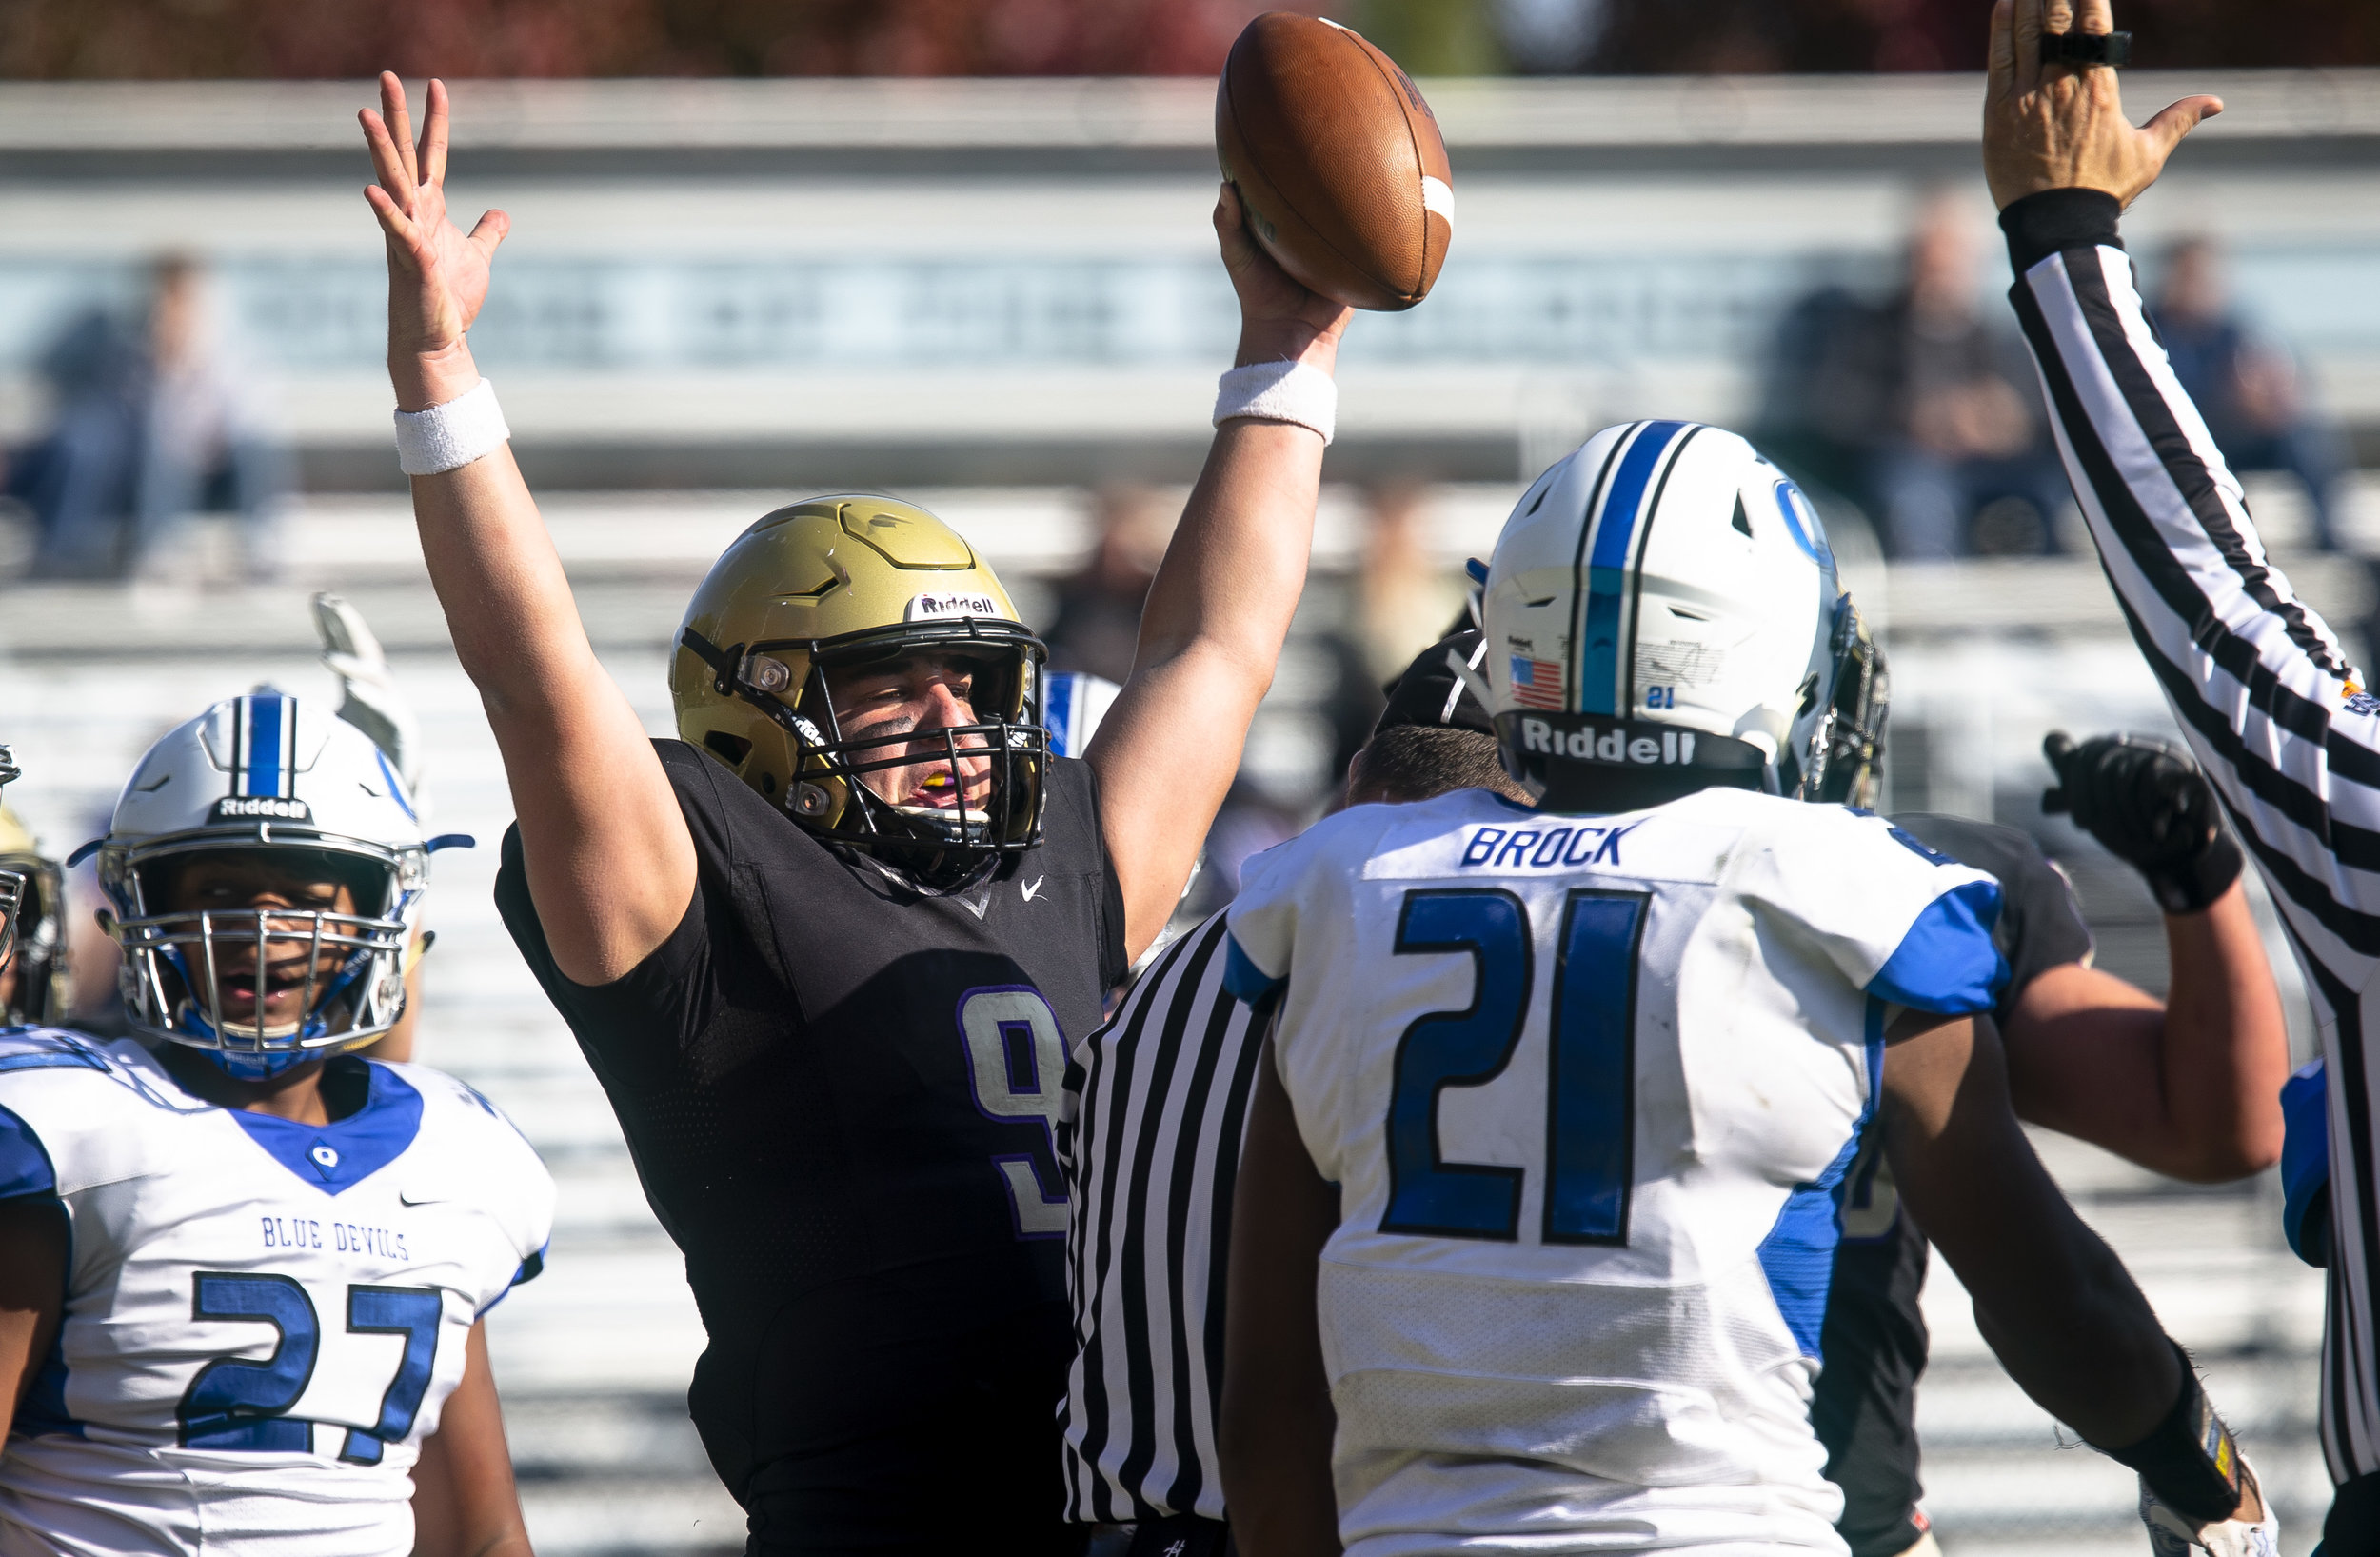 Sacred Heart-Griffin's Sam Sweetland celebrates a quarterback keeper that was good for a fourth quarter touchdown to put the Cyclones up 33-14 over the Quincy Blue Devils in a Class 6A playoff game Saturday, Oct. 27, 2018 at Ken Leonard Field in Springfield, Ill. [Rich Saal/The State Journal-Register]